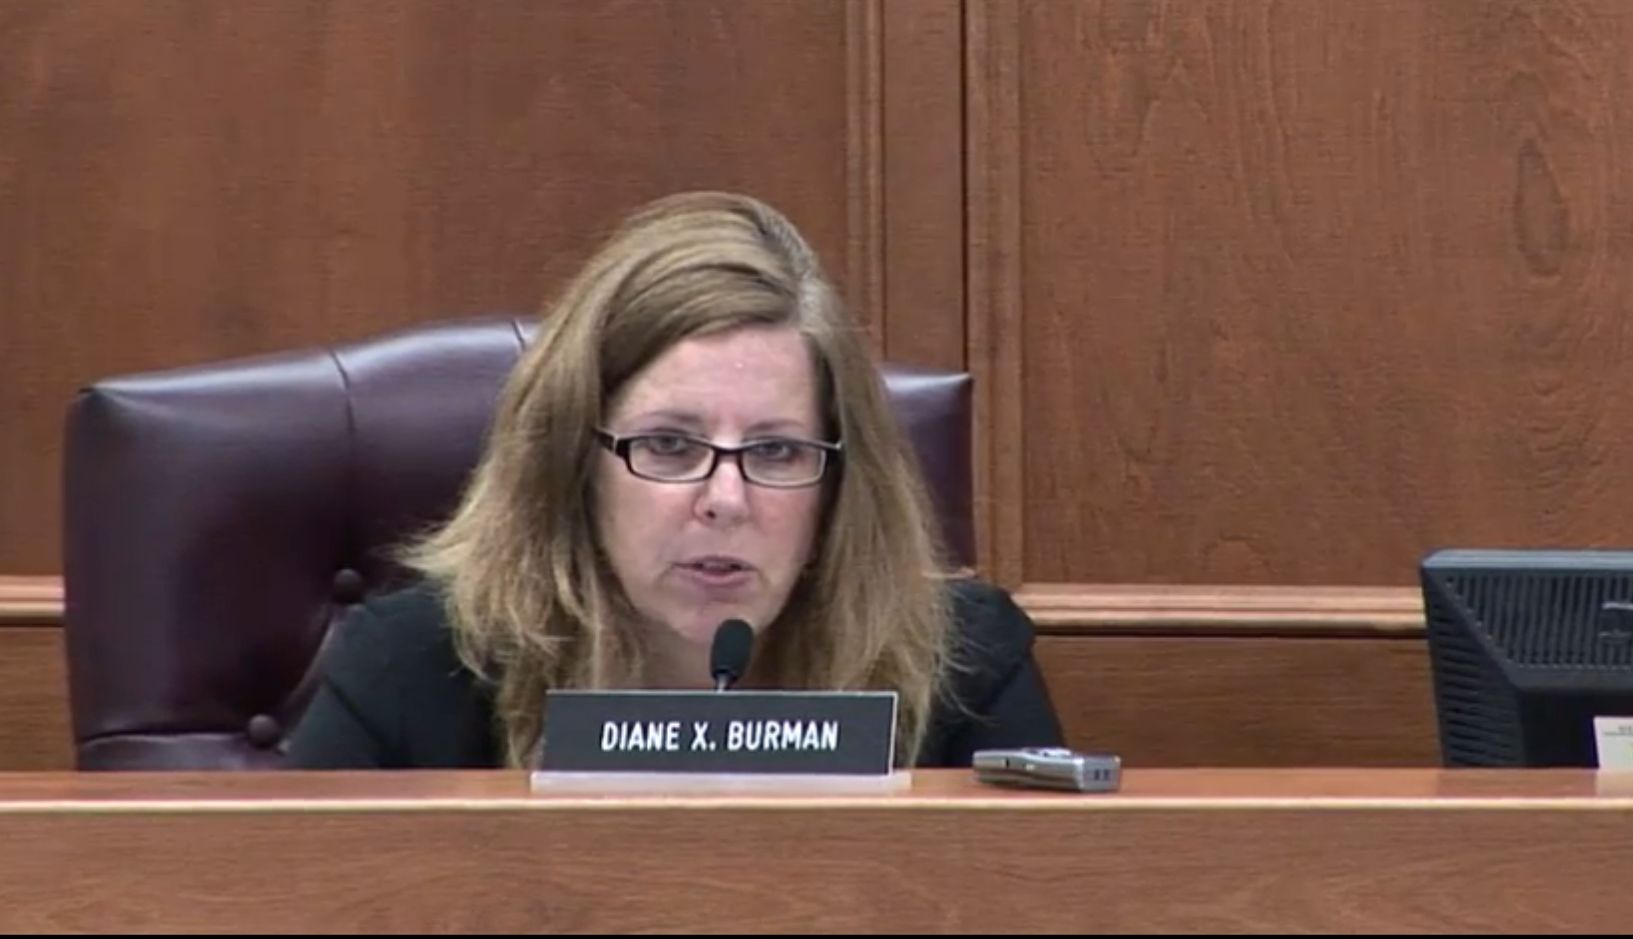 New York Public Service Commissioner Diane X. Burman at a hearing to approve Governor Andrew Cuomo's clean energy plan on Aug. 1, 2016. (Screenshot/Livestream on DPS.NY.gov)